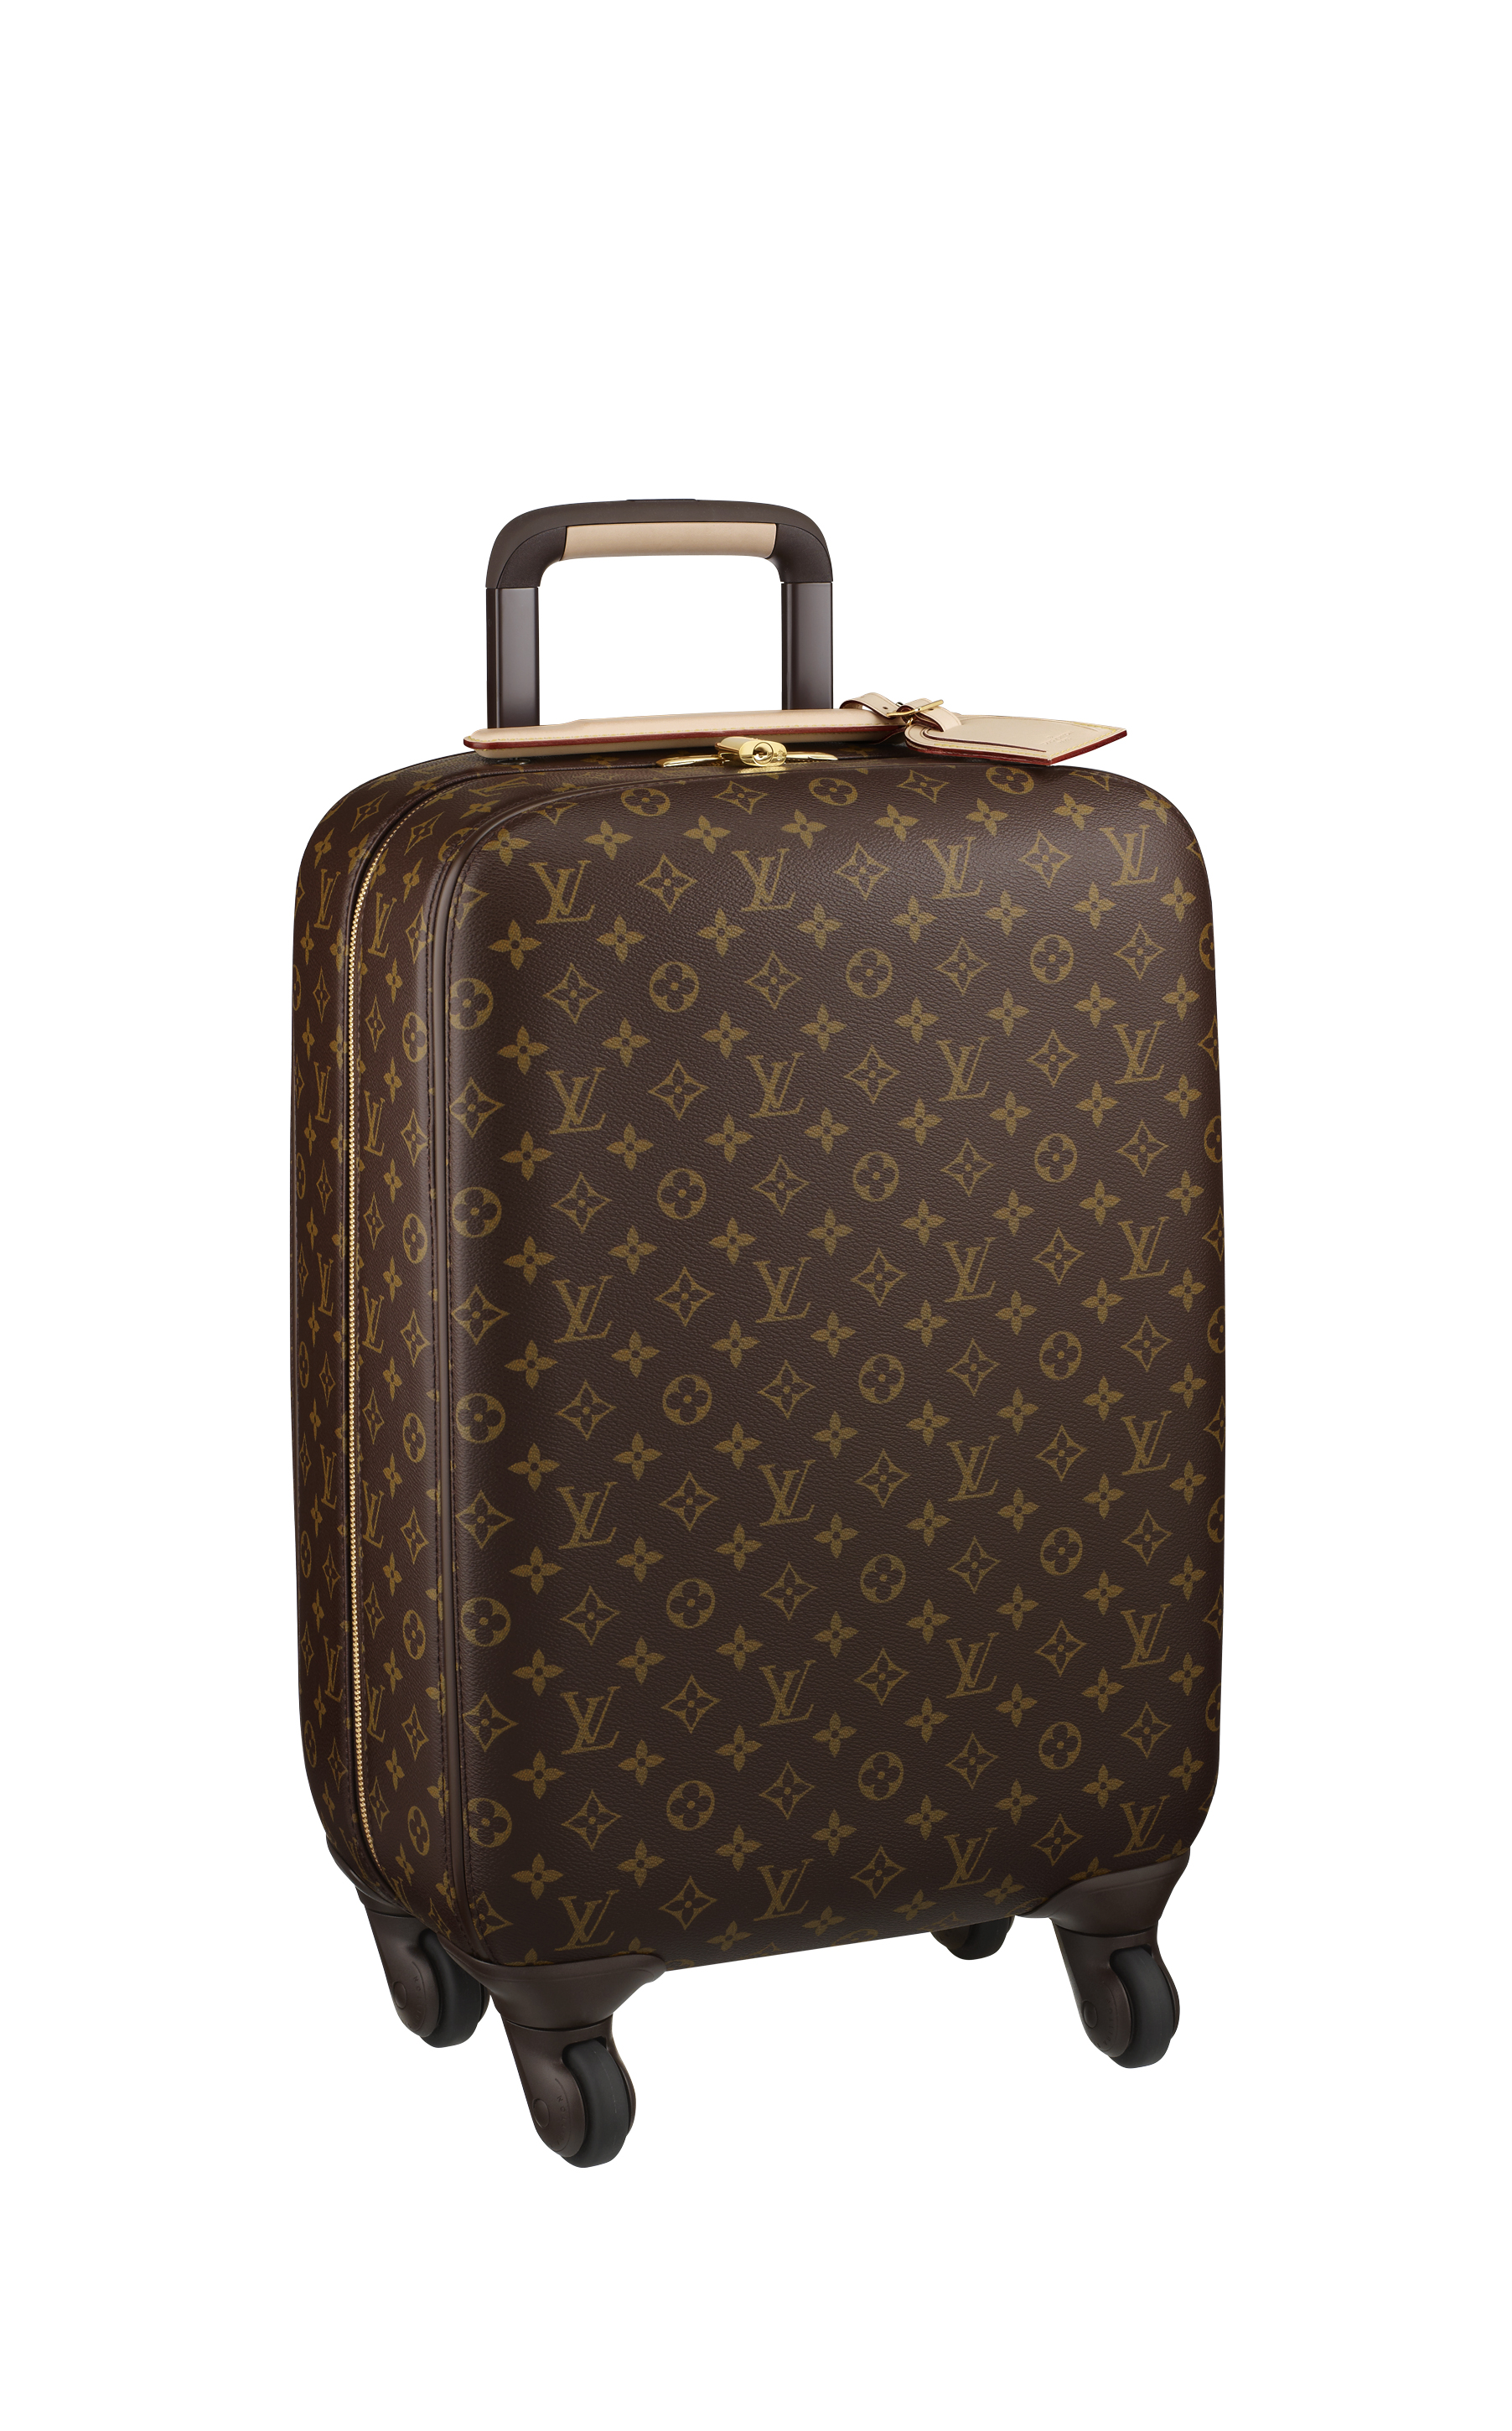 louis vuitton 4 wheel trolley 55 in monogram canvas sooo fabulous. Black Bedroom Furniture Sets. Home Design Ideas